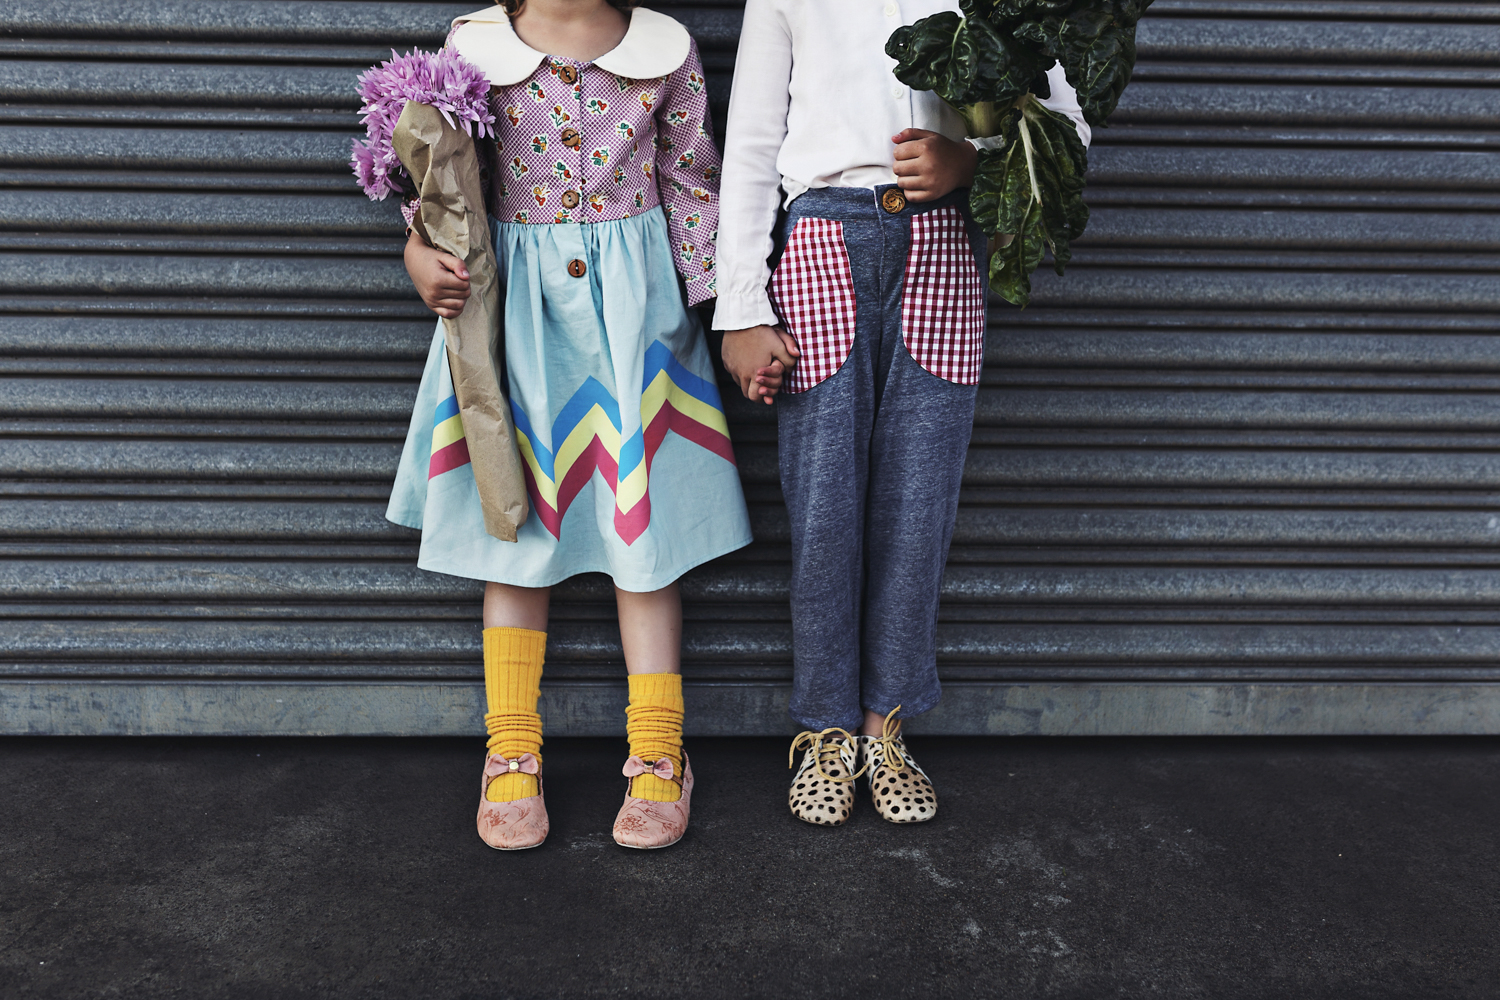 Two girls hold hands with their flowers and shopping in cute ret